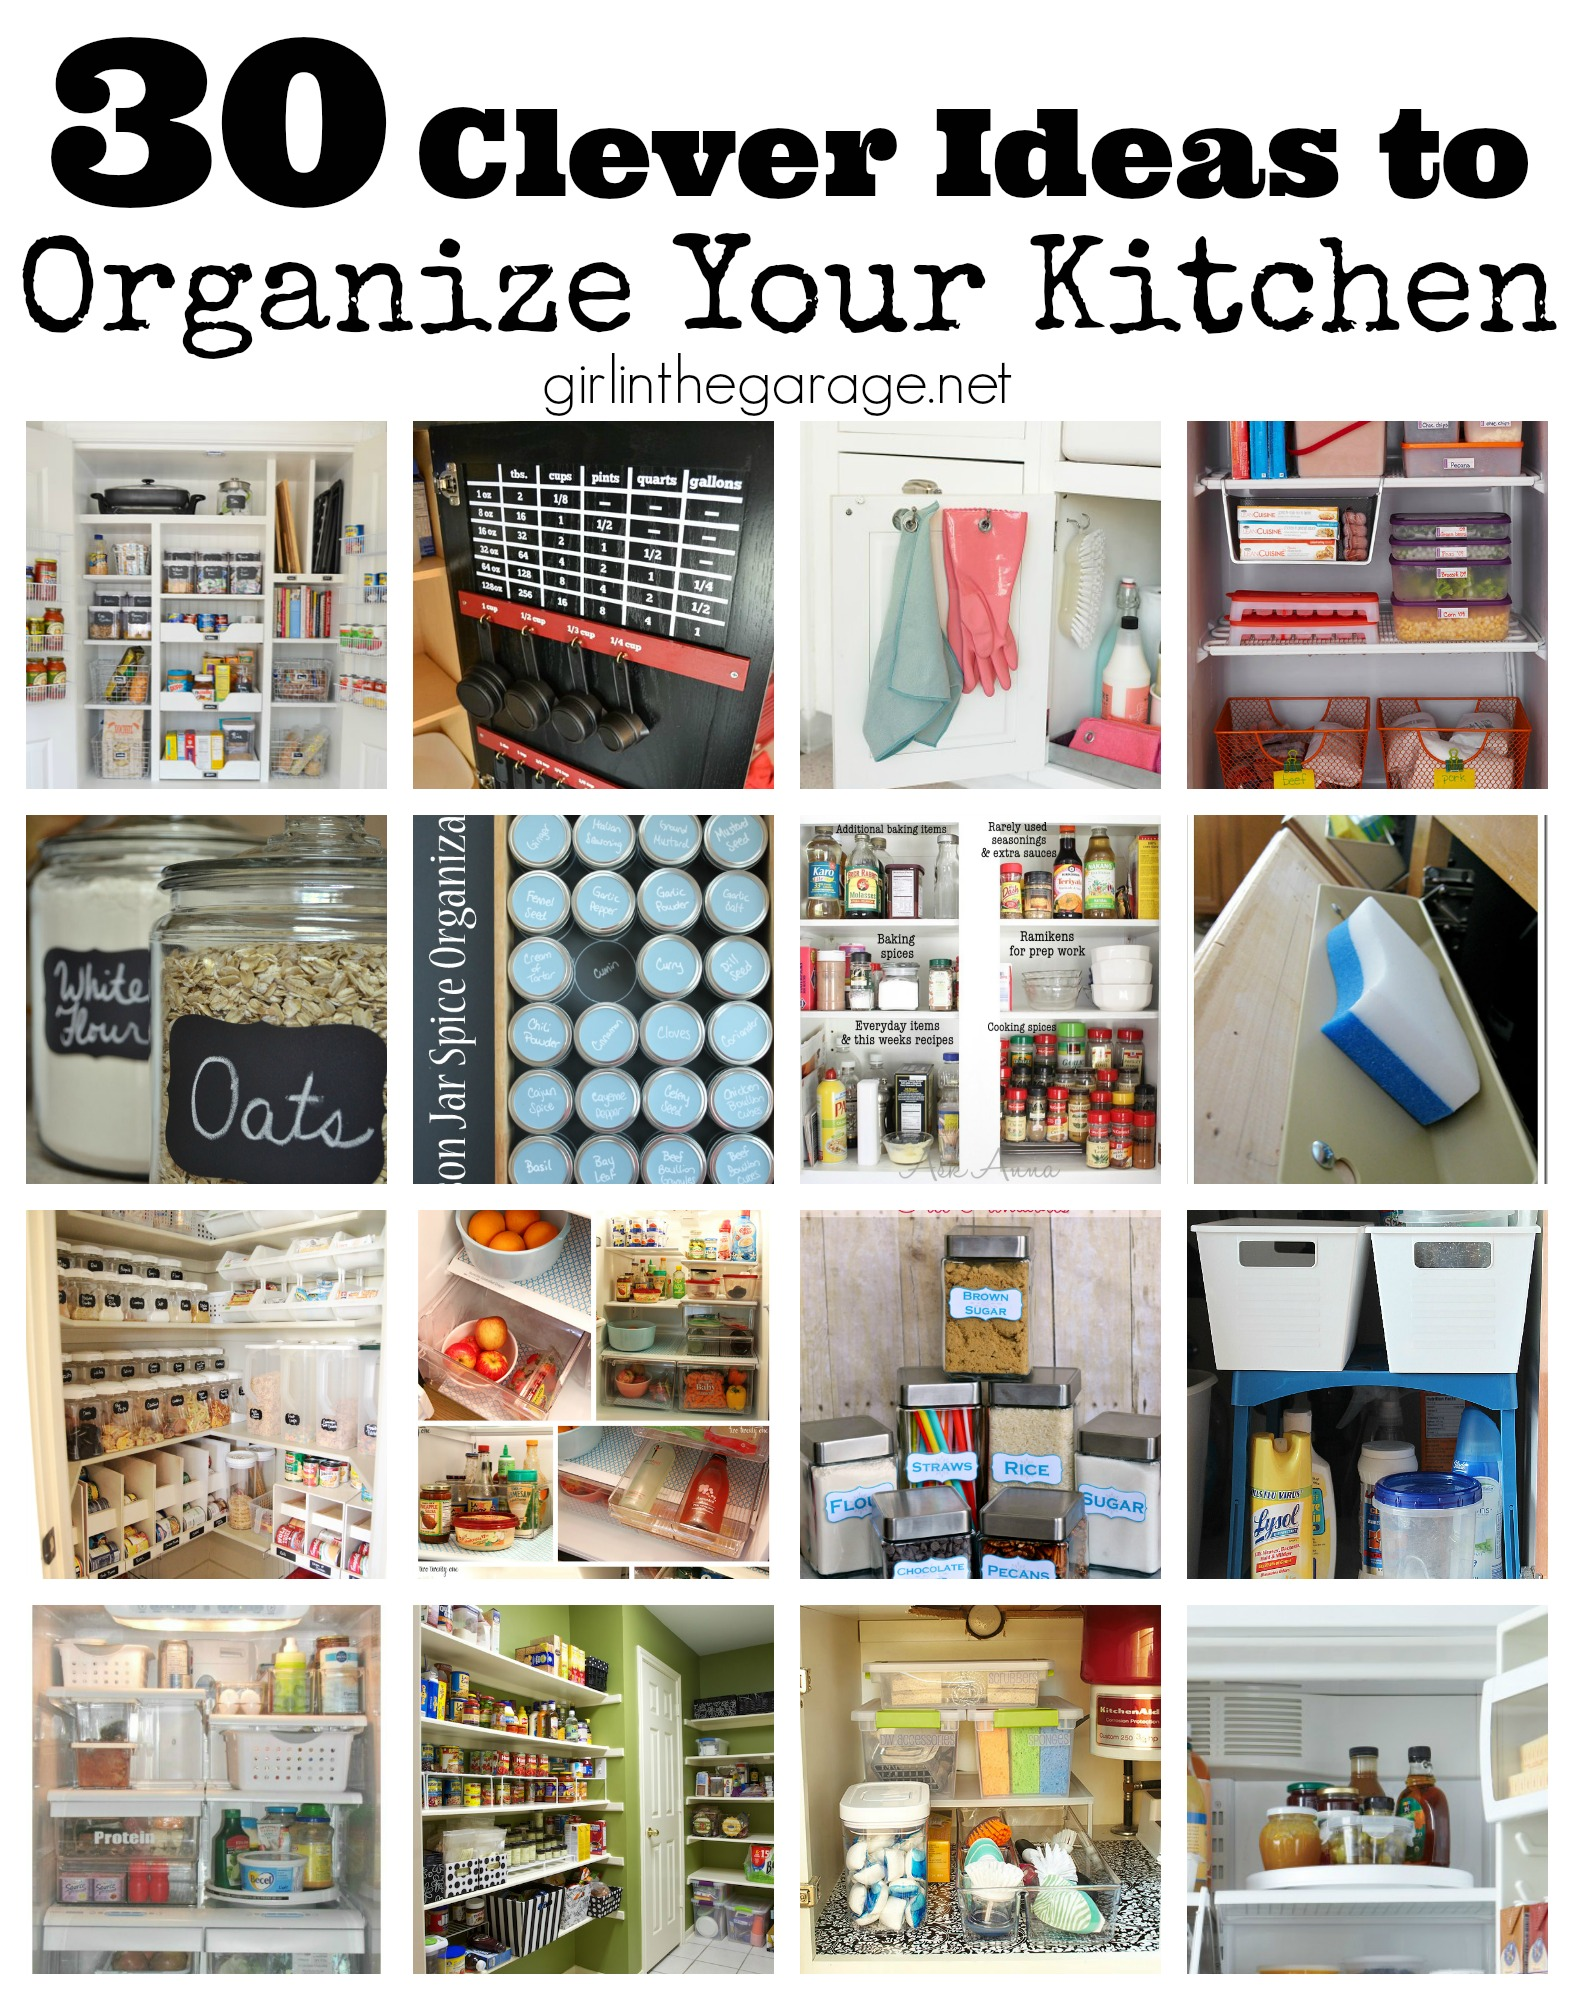 30 Clever Ideas To Organize Your Kitchen Girl In The Garage